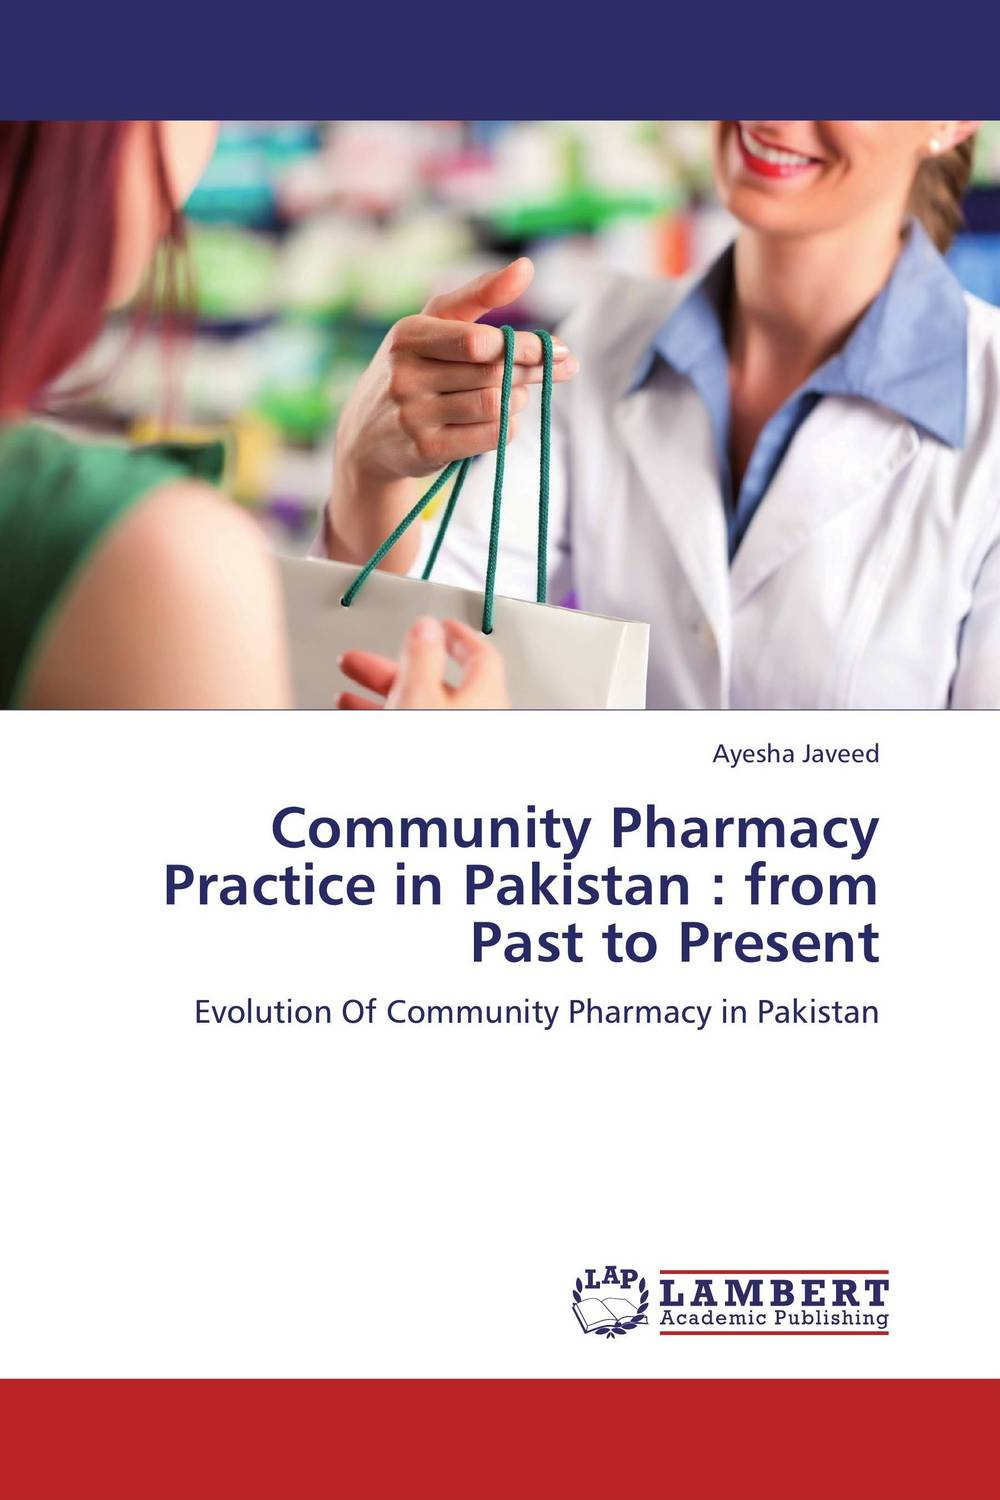 Community Pharmacy Practice in Pakistan : from Past to Present leishmaniasis in pakistan